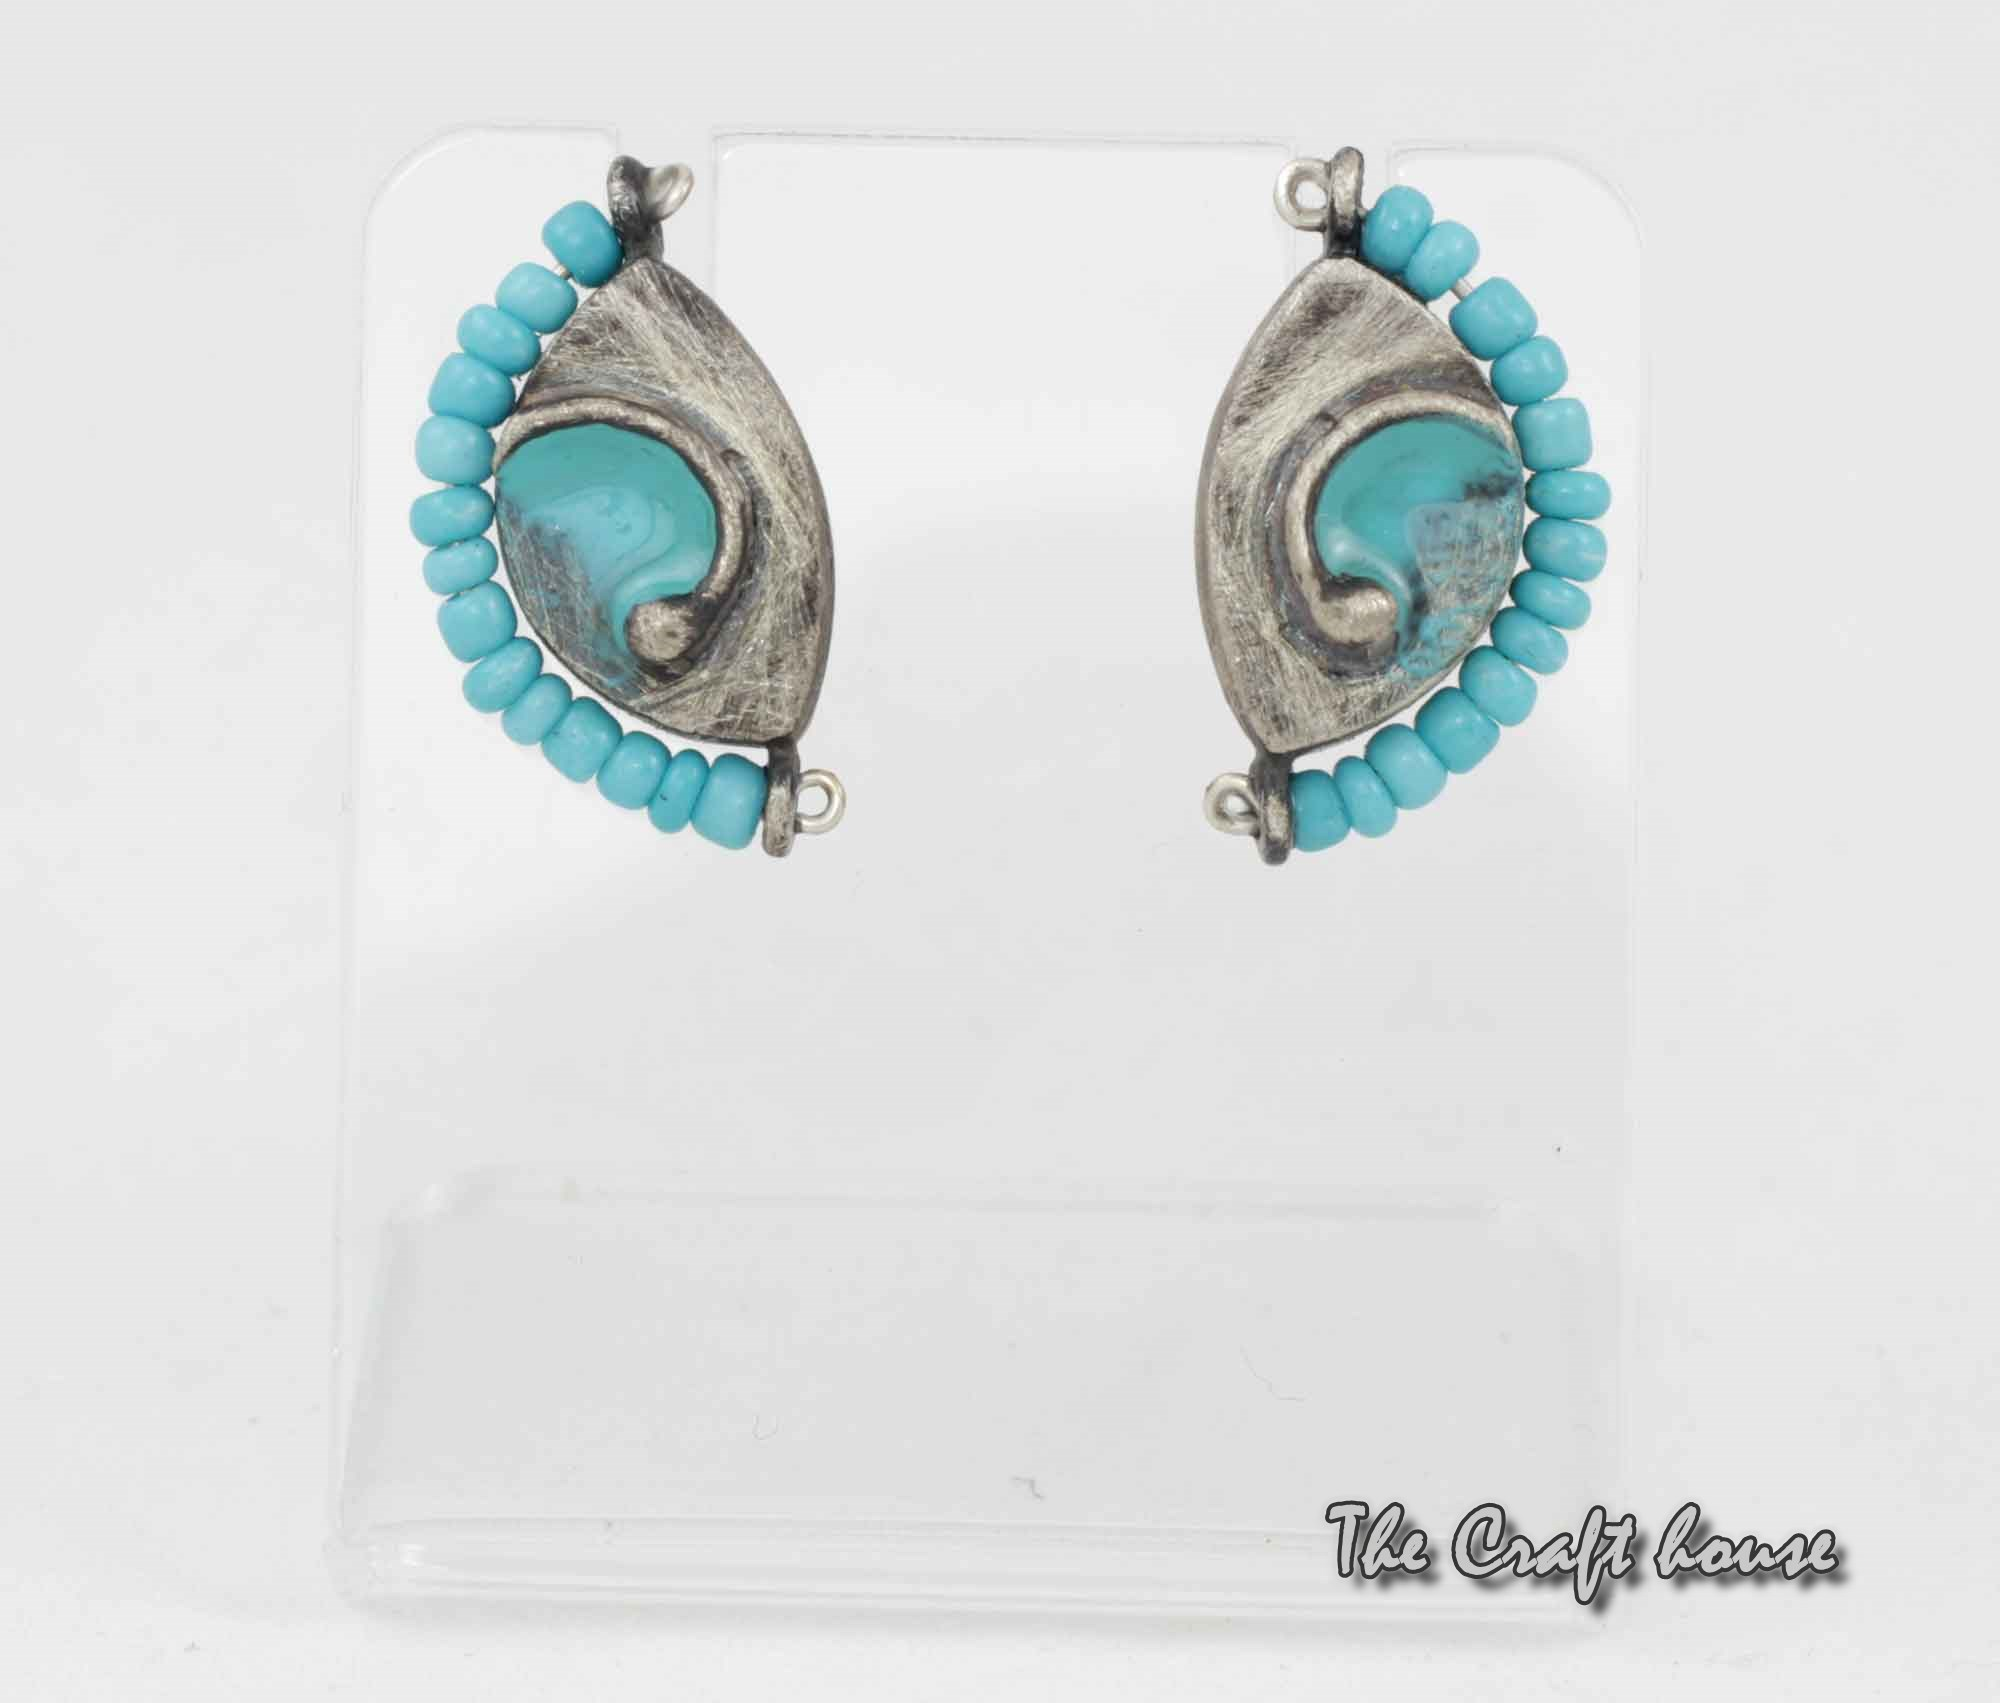 Silver earrings with Turquoise and enamel